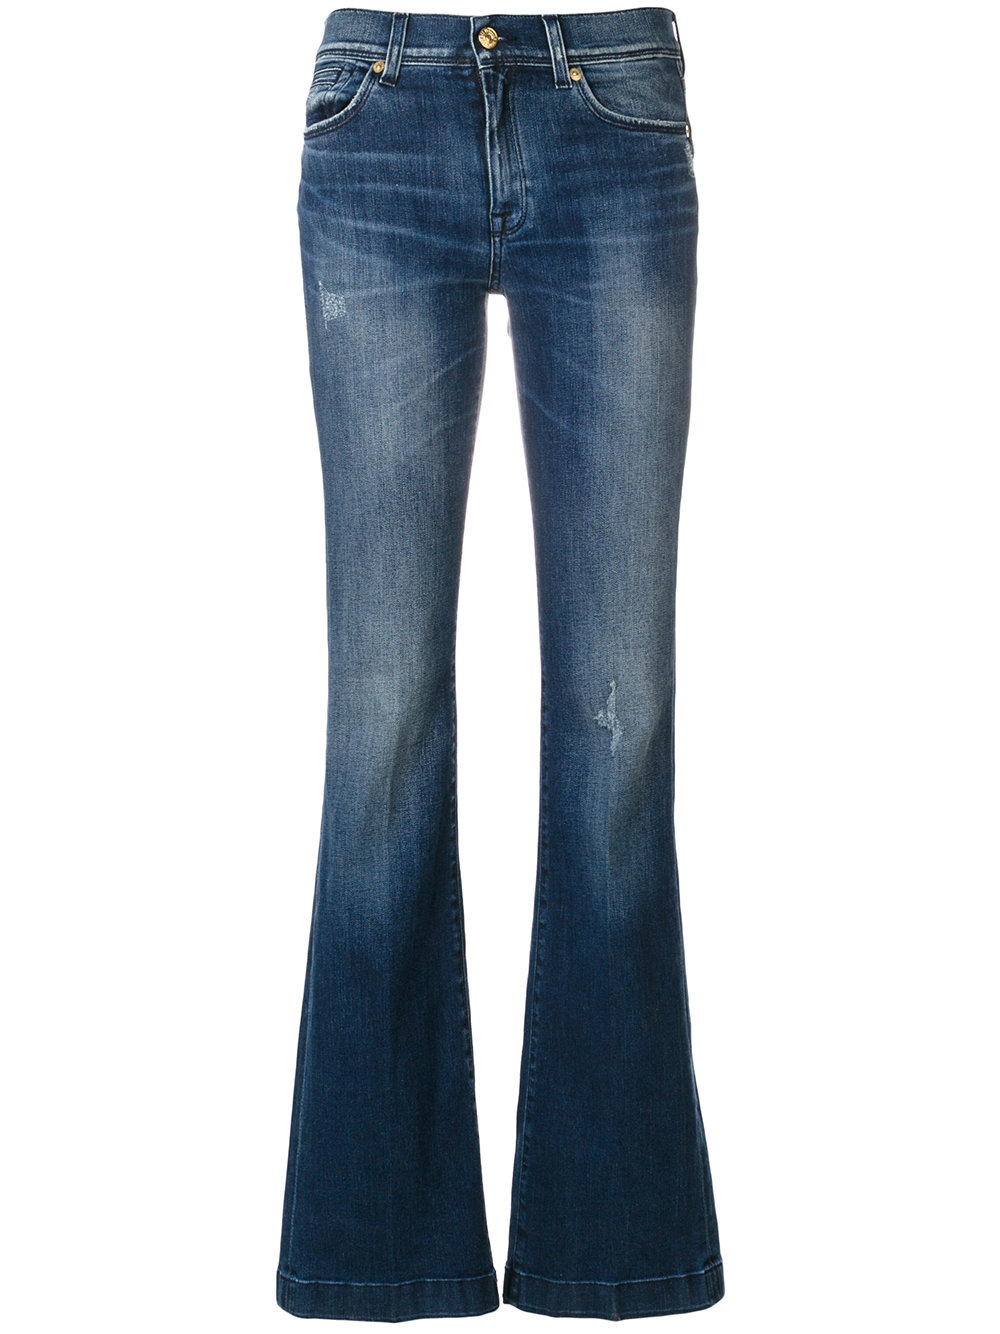 7 For All Mankind CHARLIZE